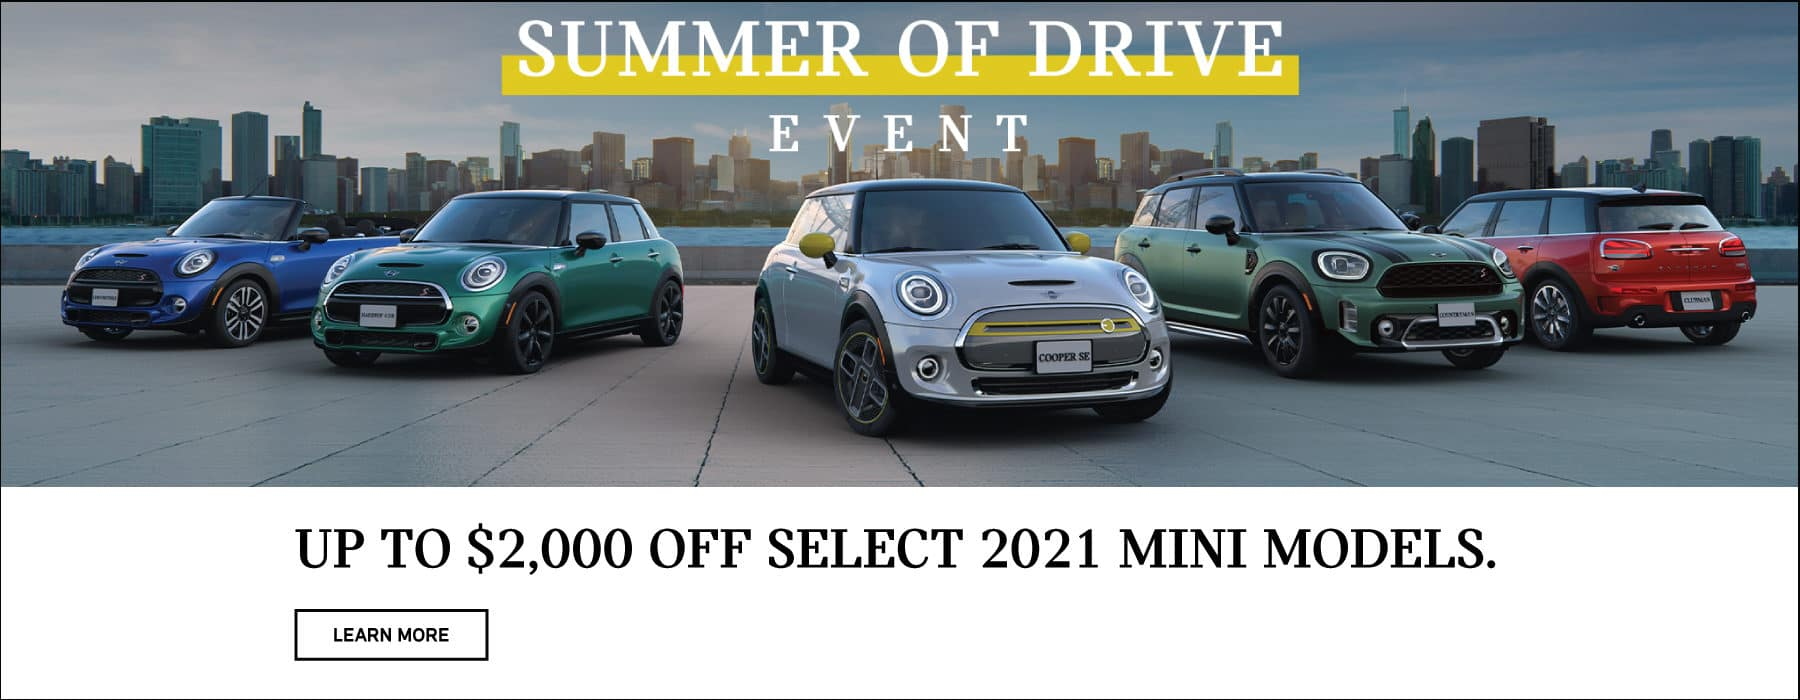 Up to $2,000 Off select 2021 MINI models.